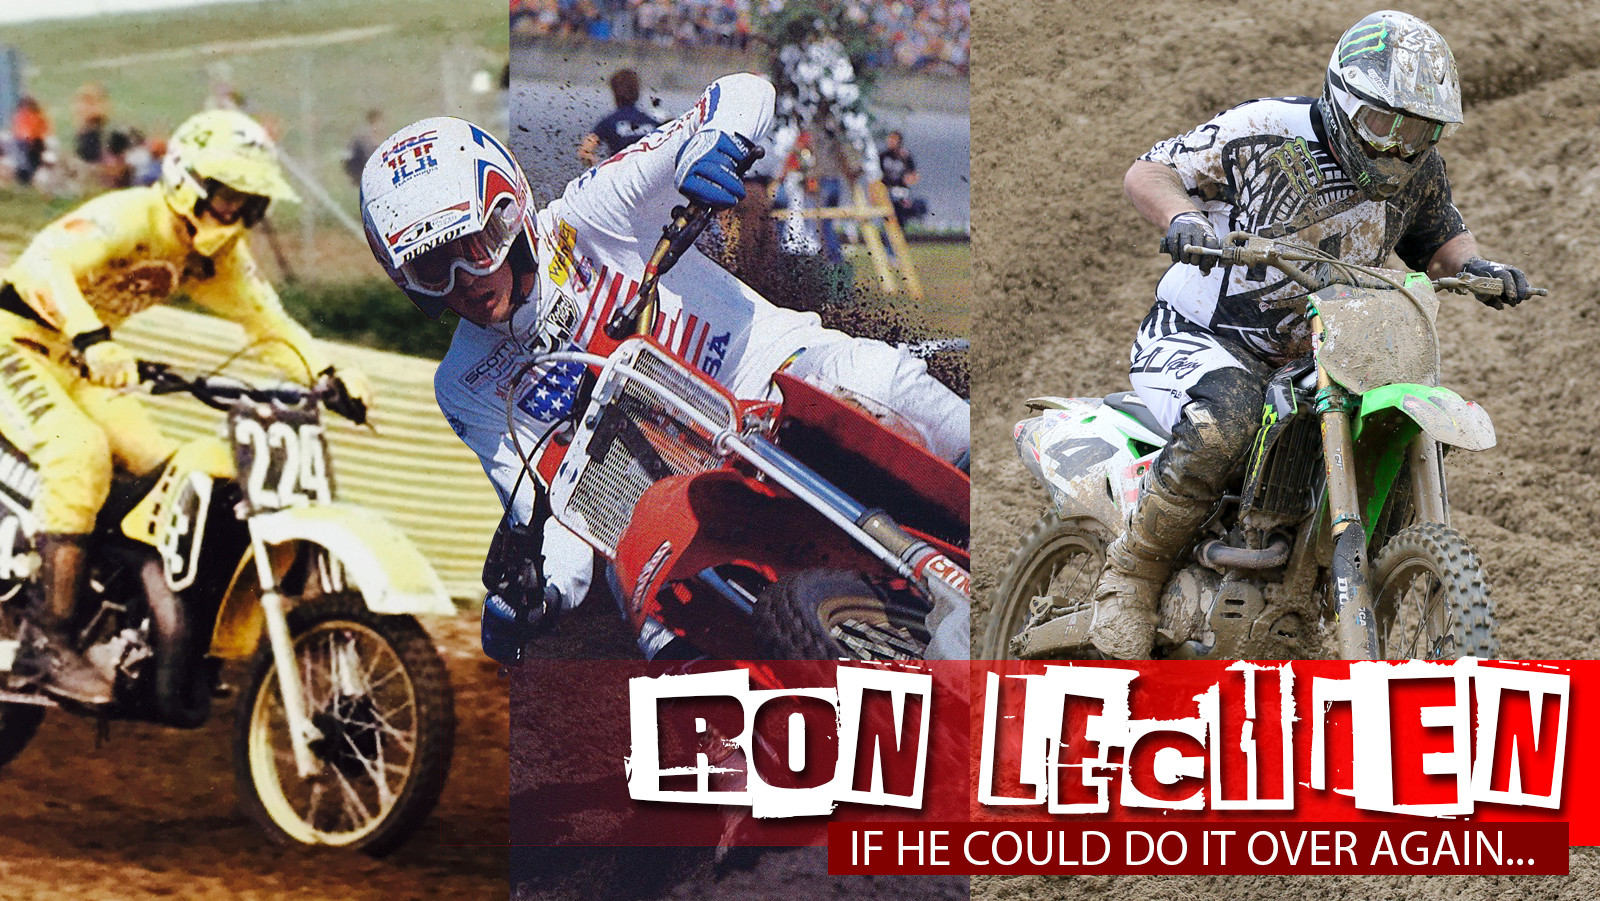 Ron Lechien: If He Could Do It Over Again...